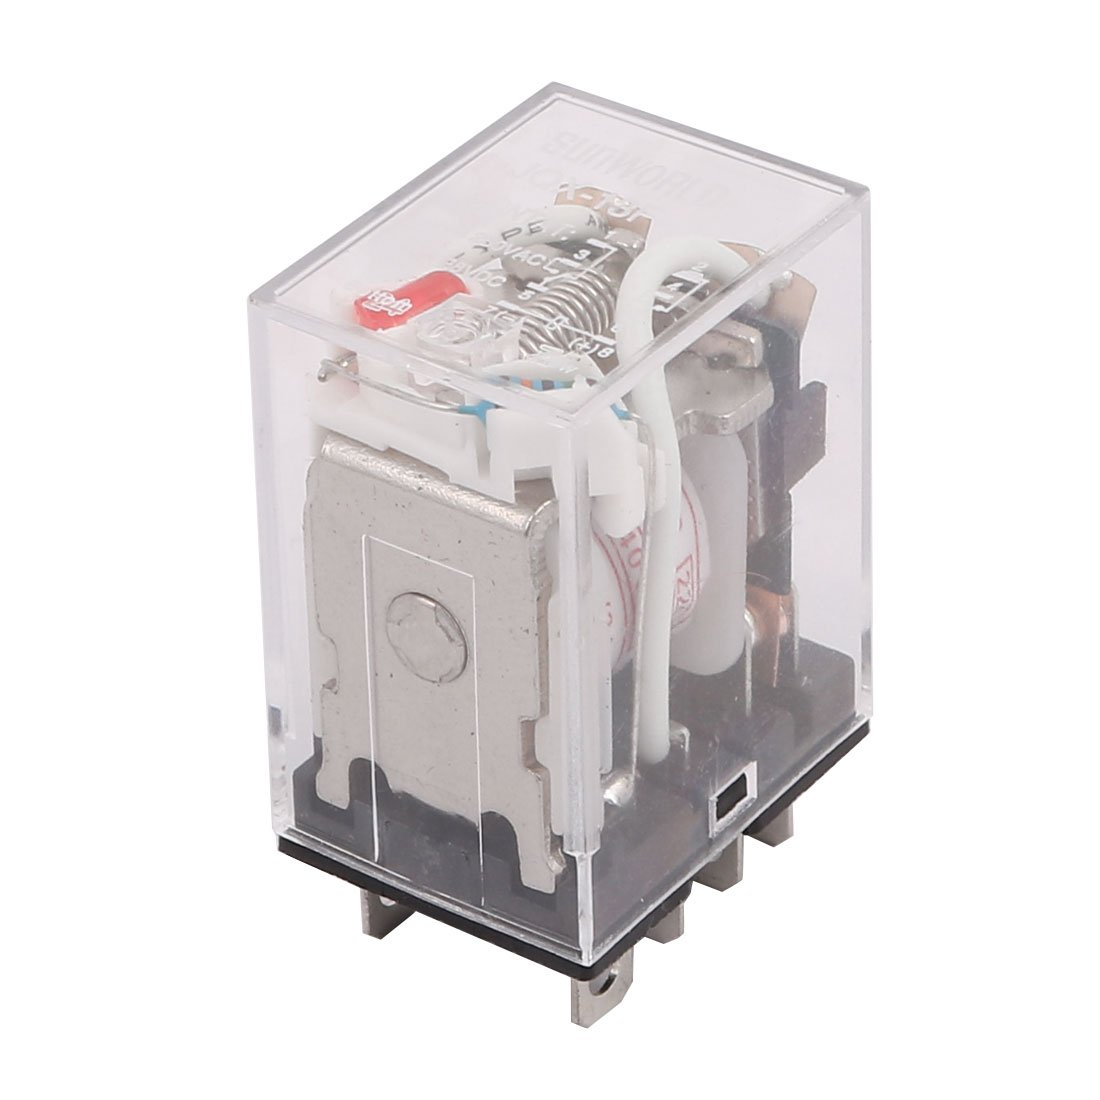 uxcell JQX-13F AC 220V Coil 8 Pin DPDT Power Relay 7.5A 220VAC/ 10A 24VDC a12080100ux0279